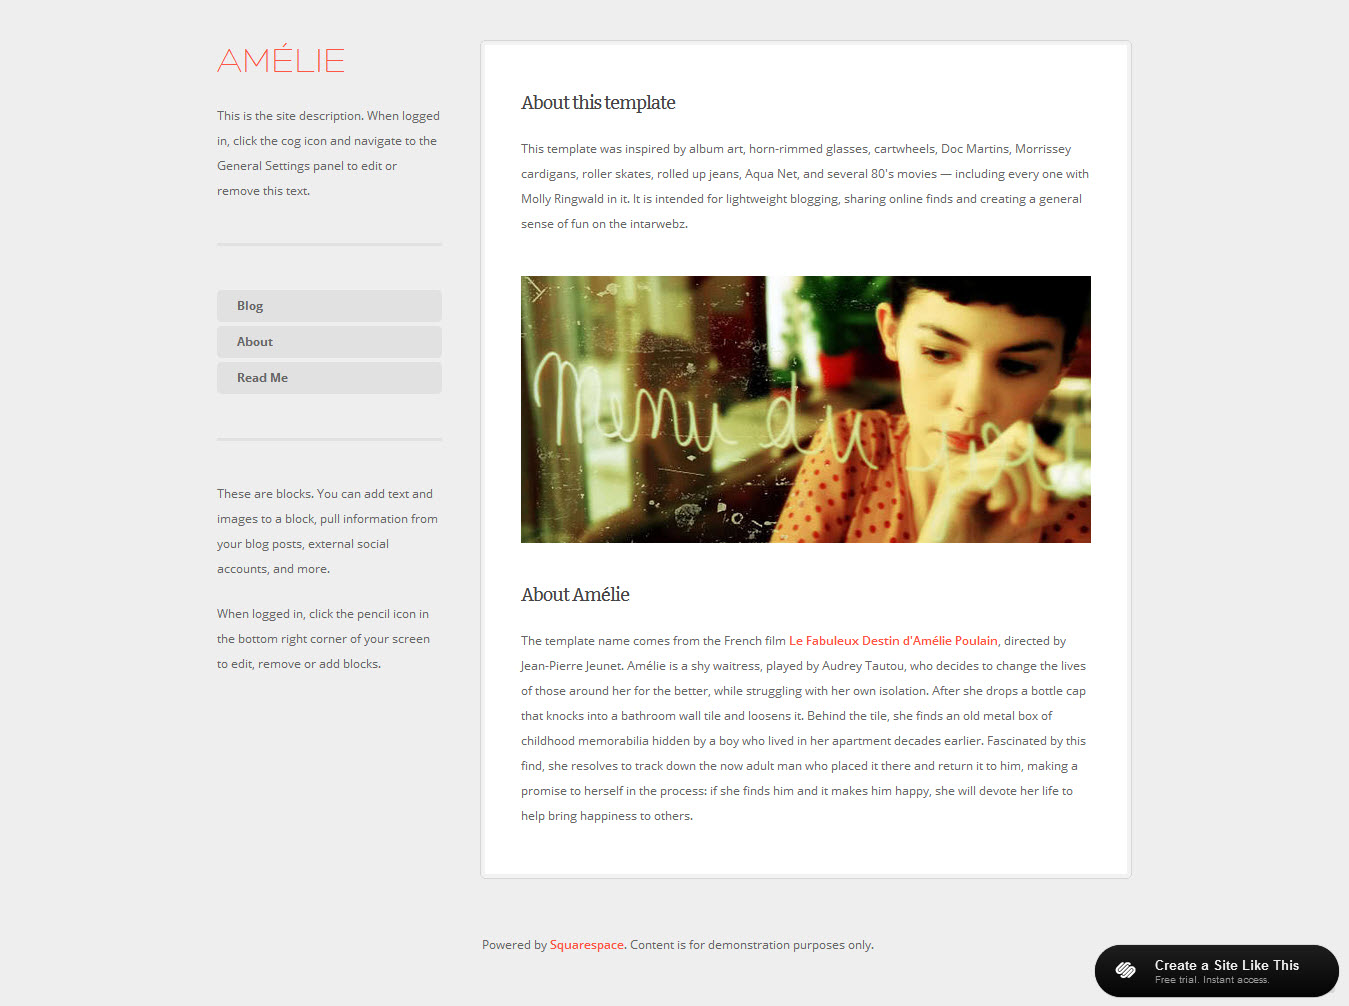 Amelie-About.jpg